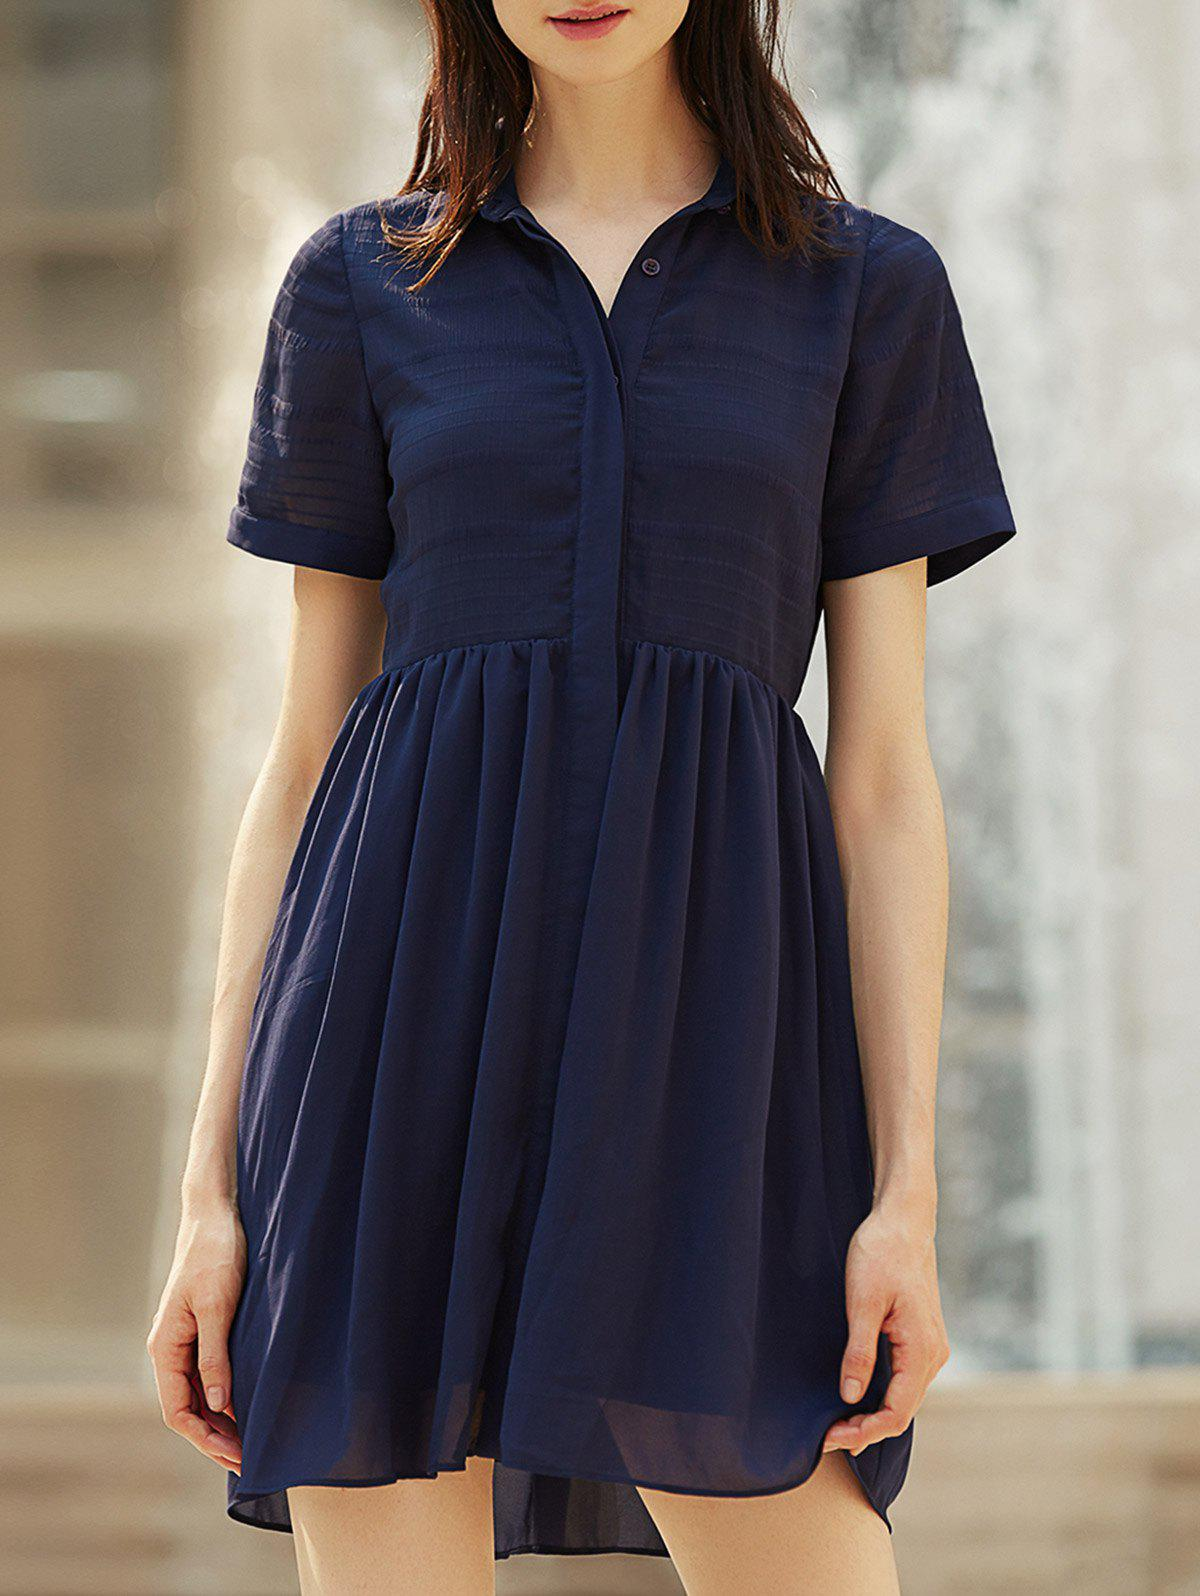 Shops Stylish Turn-Down Collar Short Sleeve Chiffon Shirt Dress For Women